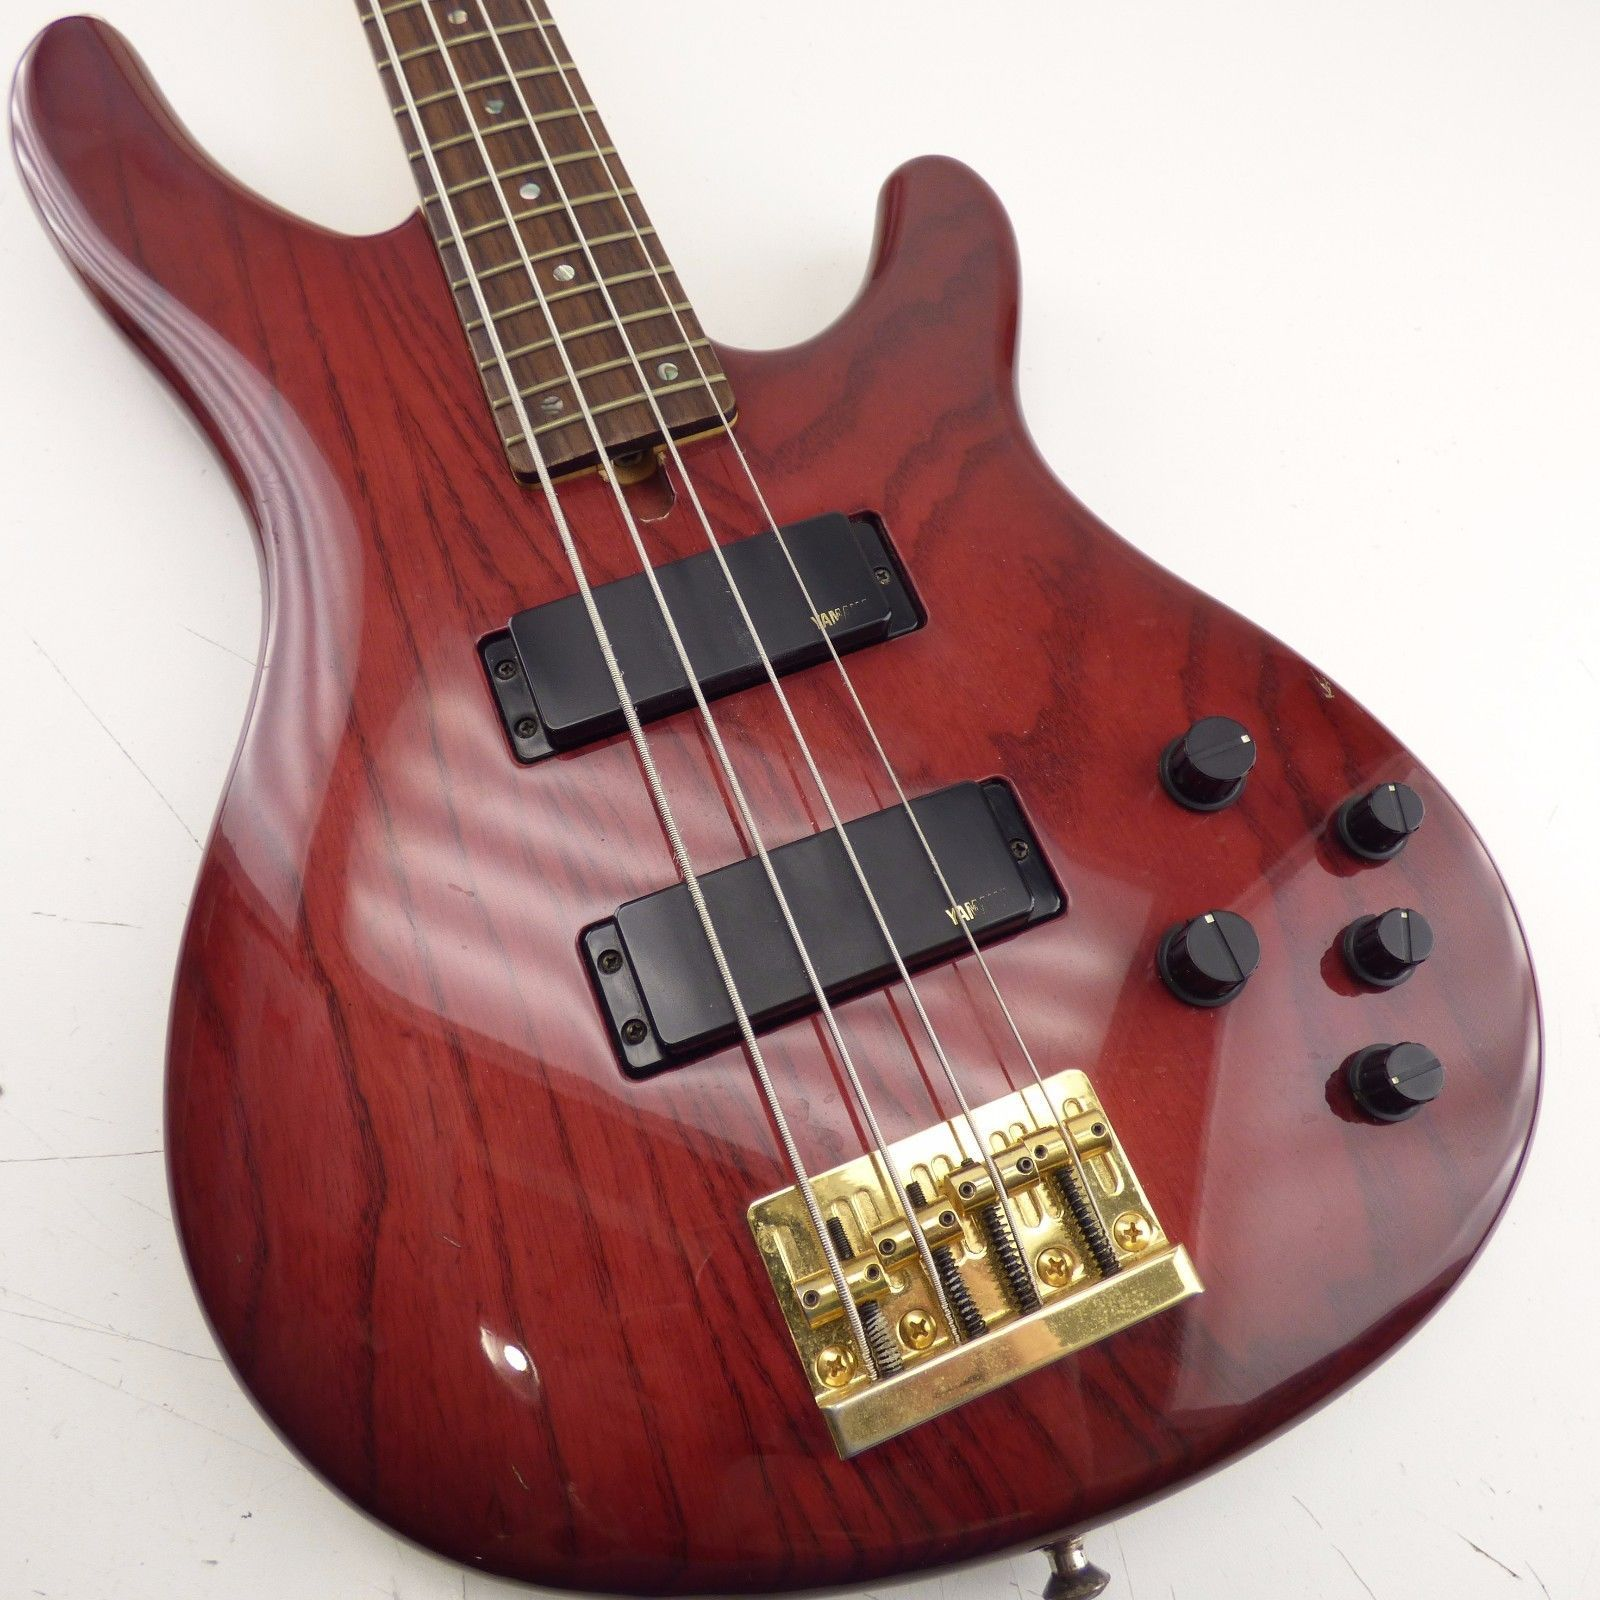 Yamaha Bass Guitar TRB 4II Made In Japan 4 String Used